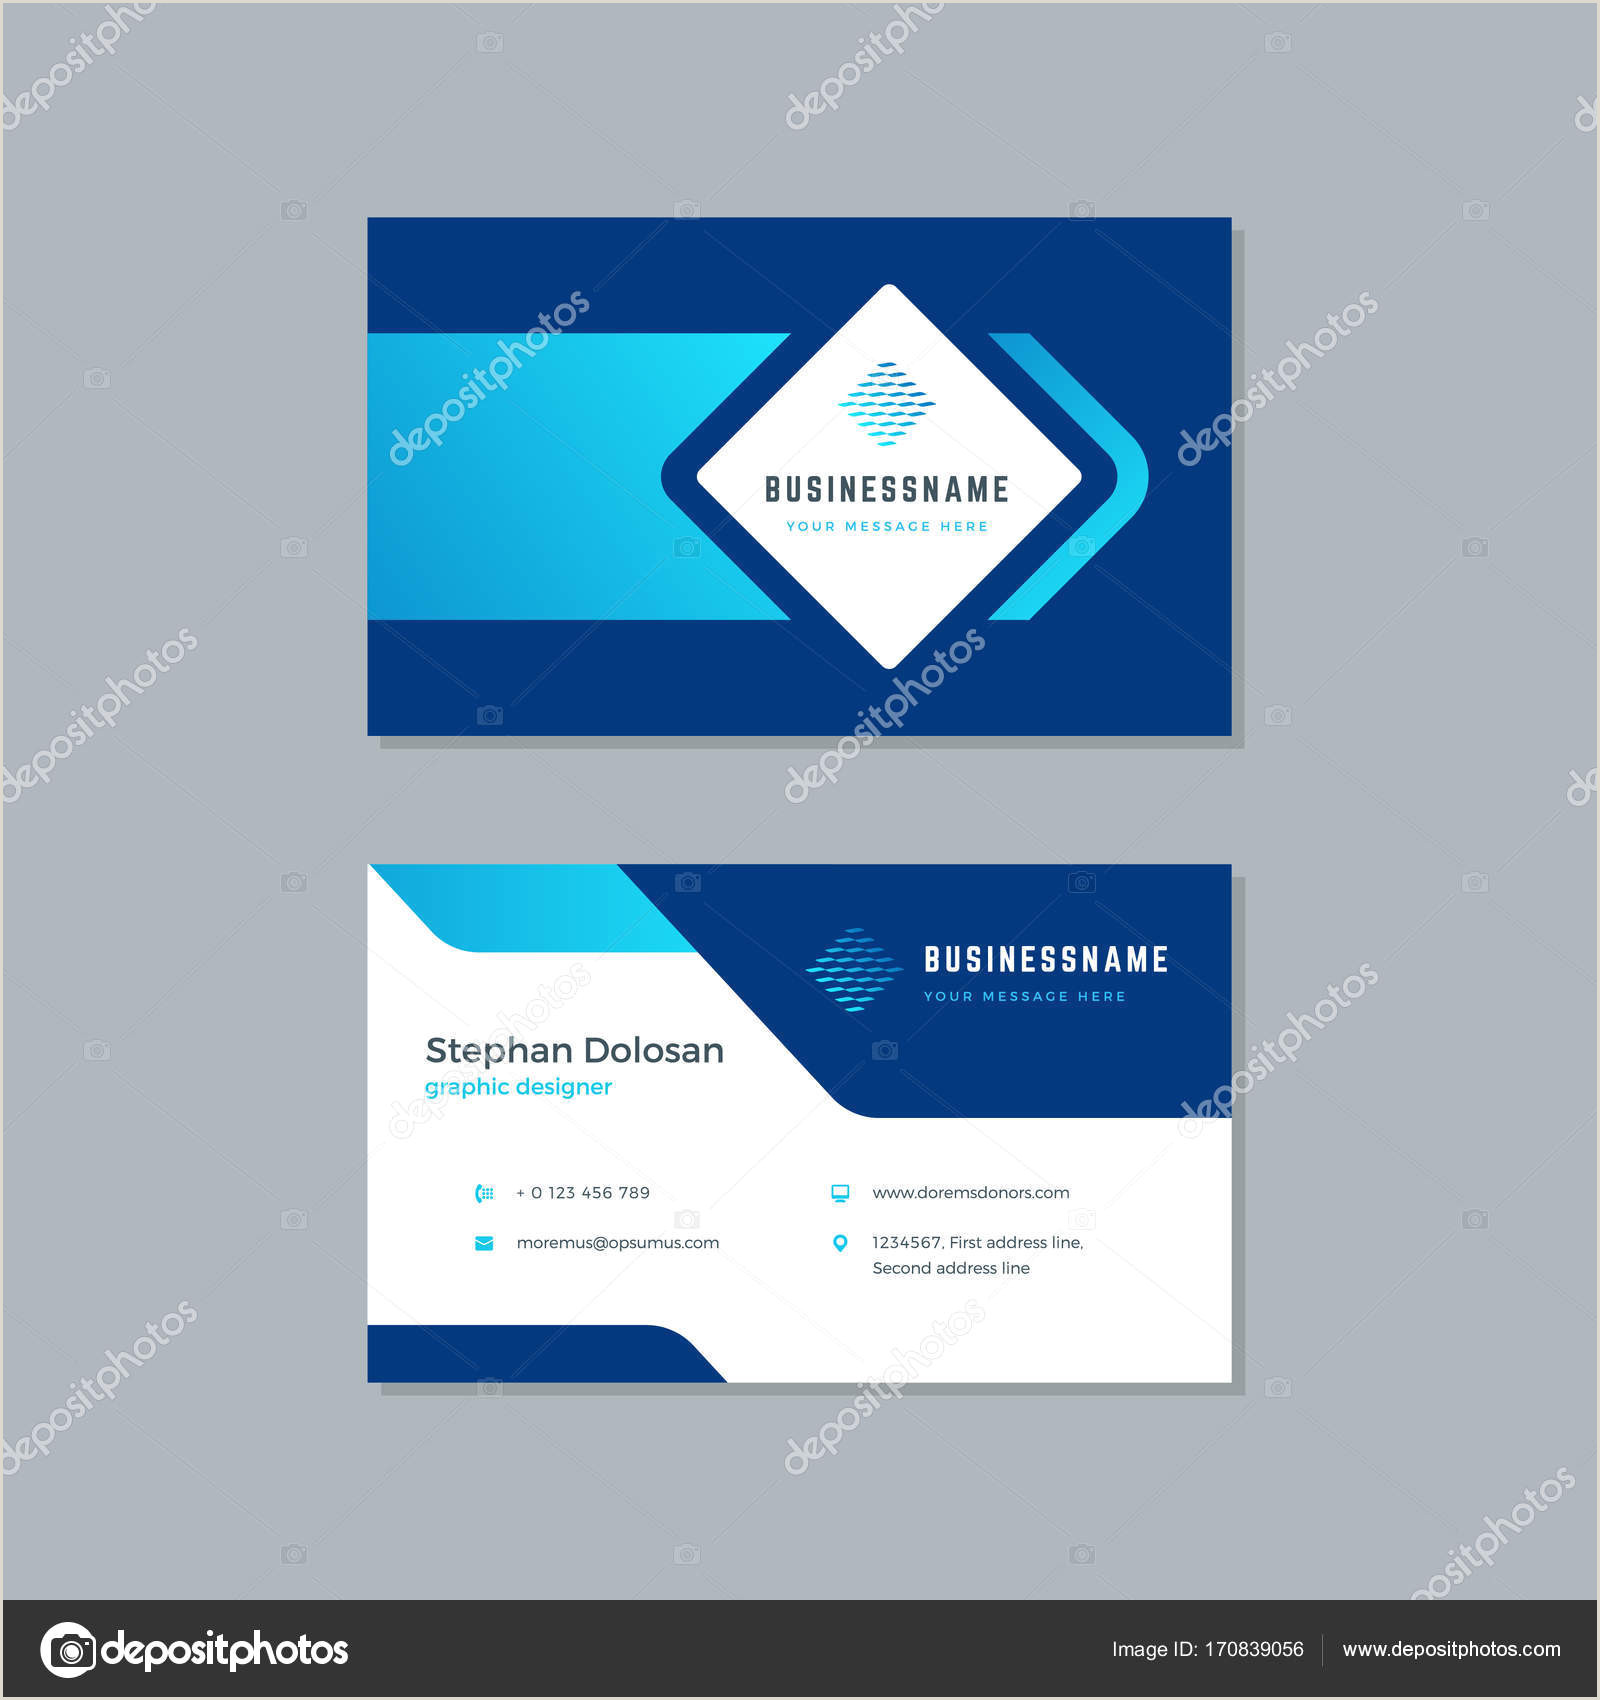 Best Business Cards Teal Blue Business Card Design Trendy Blue Colors Template